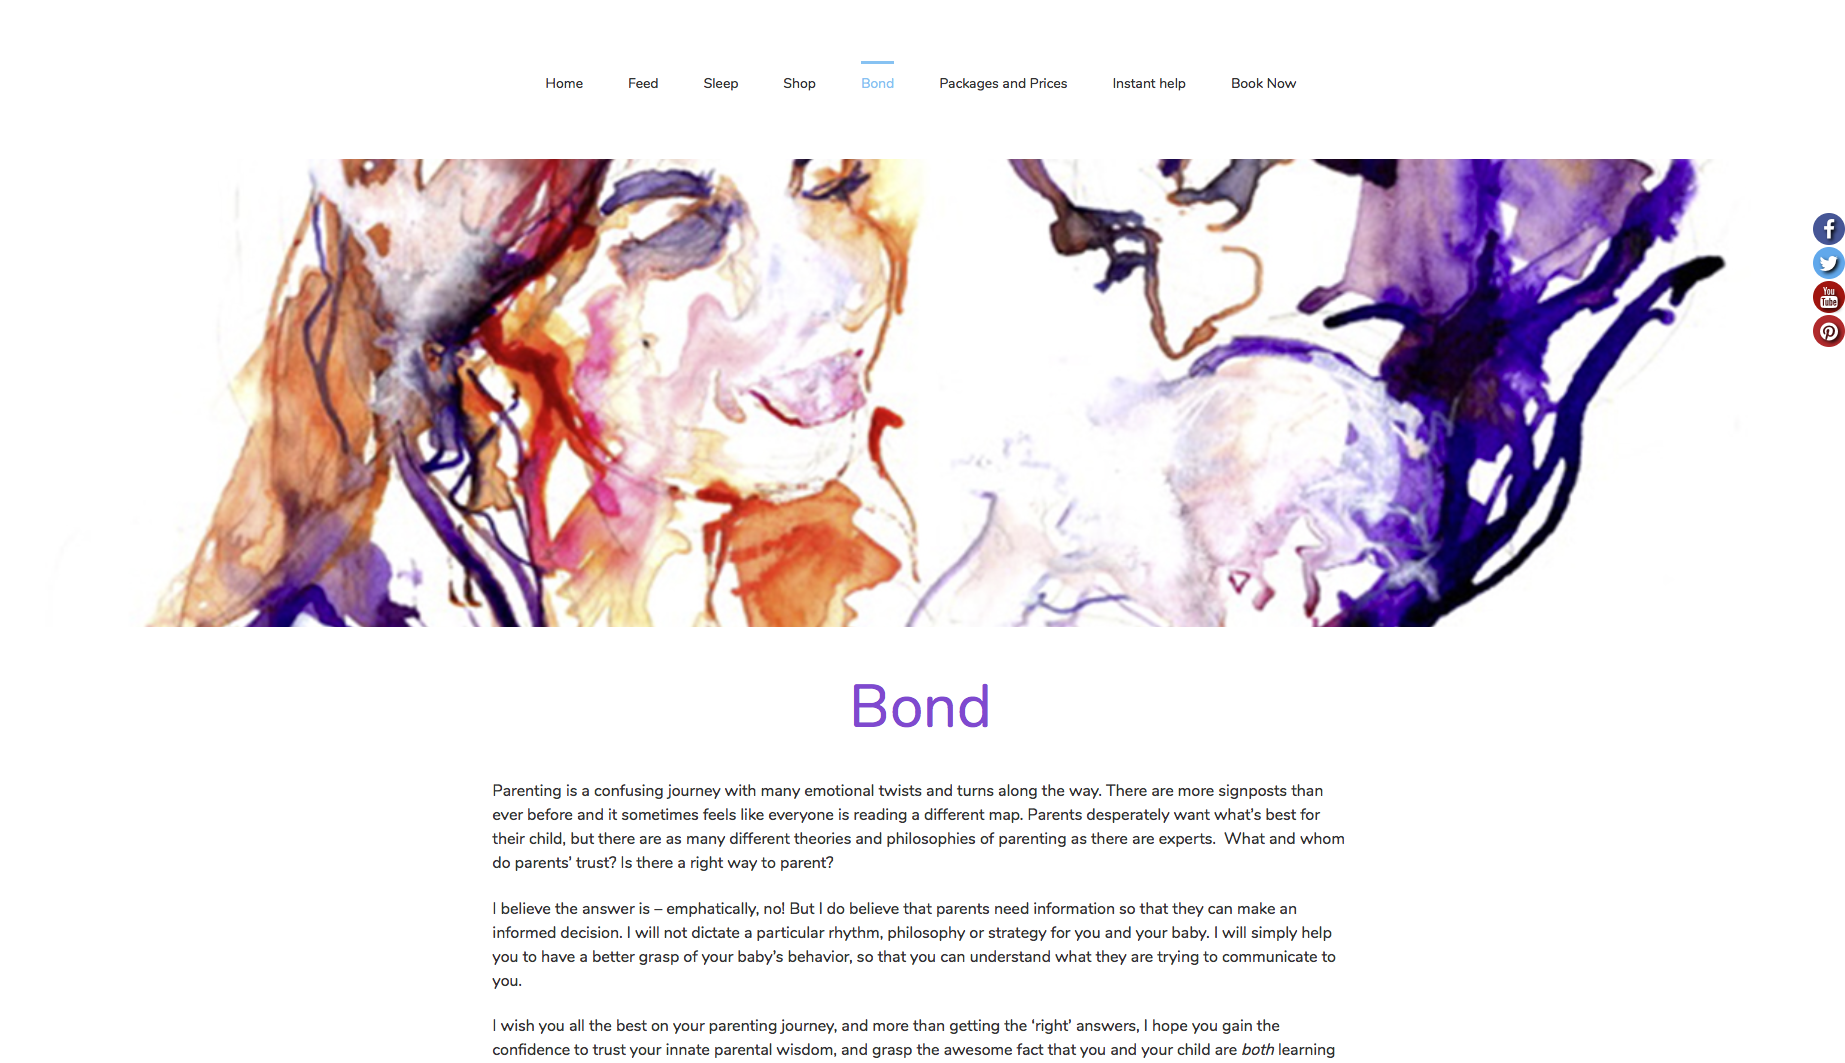 Bond page from feed sleep bond website